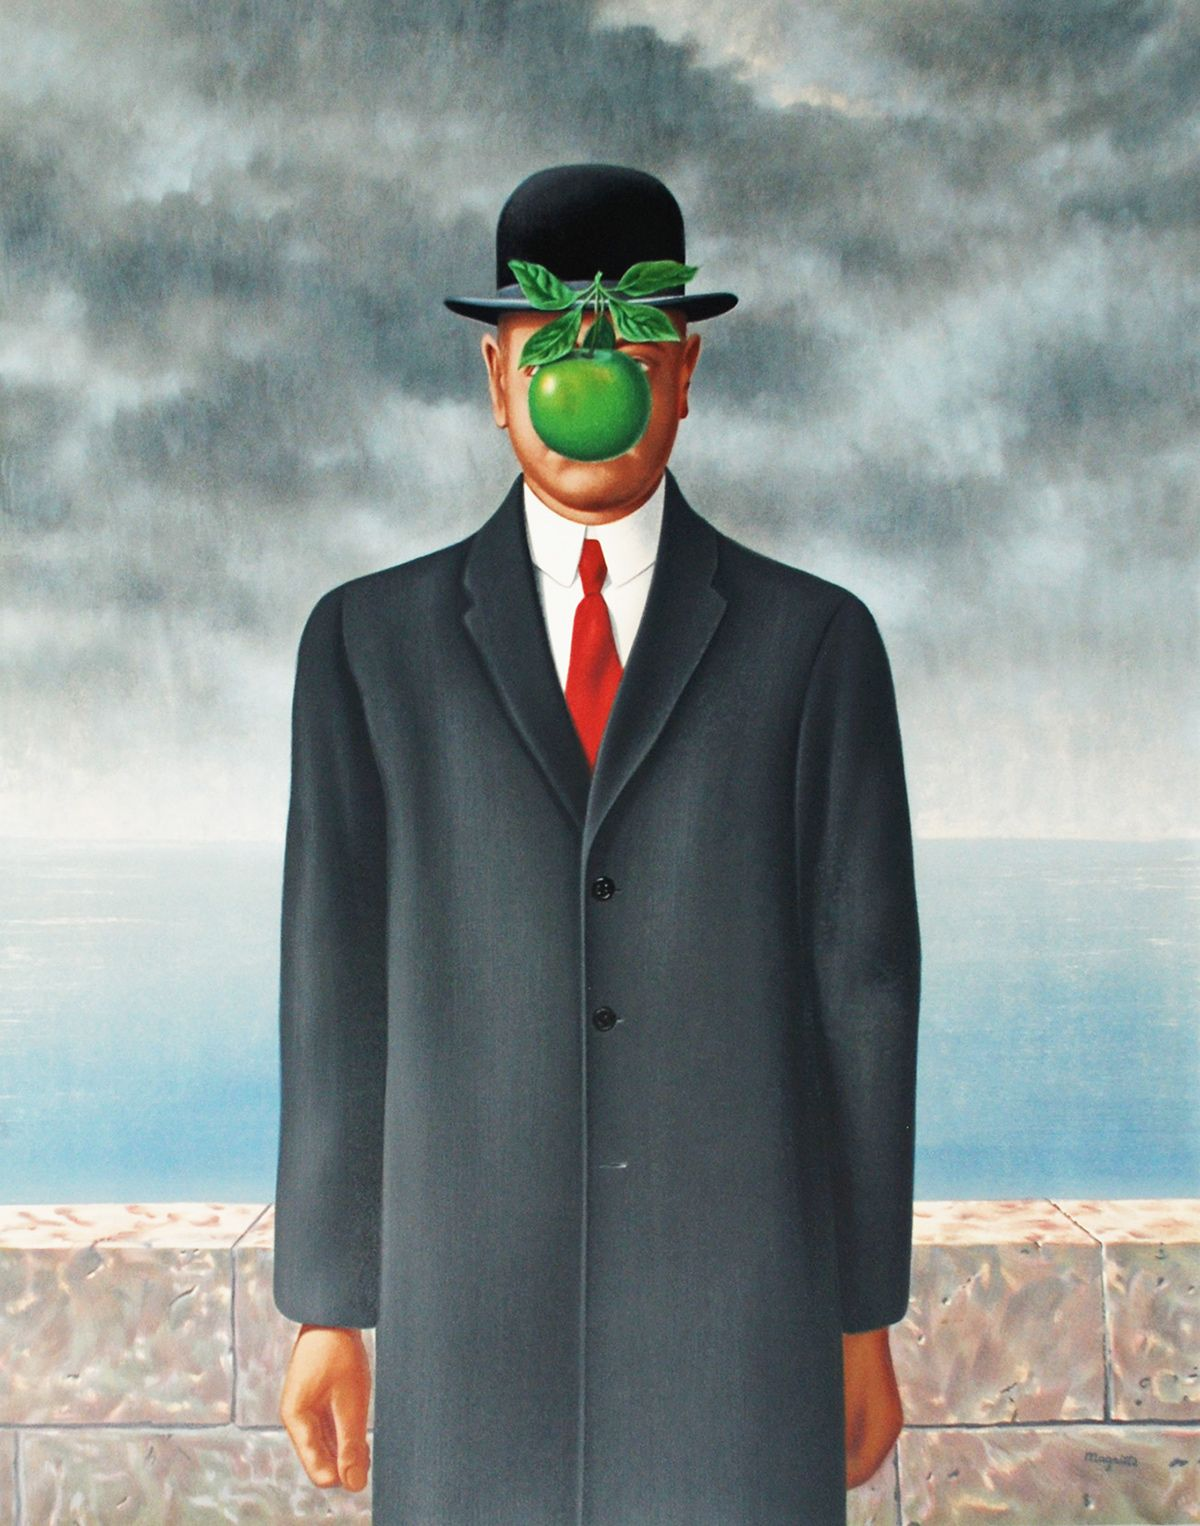 The Son Of Man Painting By Rene Magritte 1964 Rene Magritte Magritte The Son Of Man